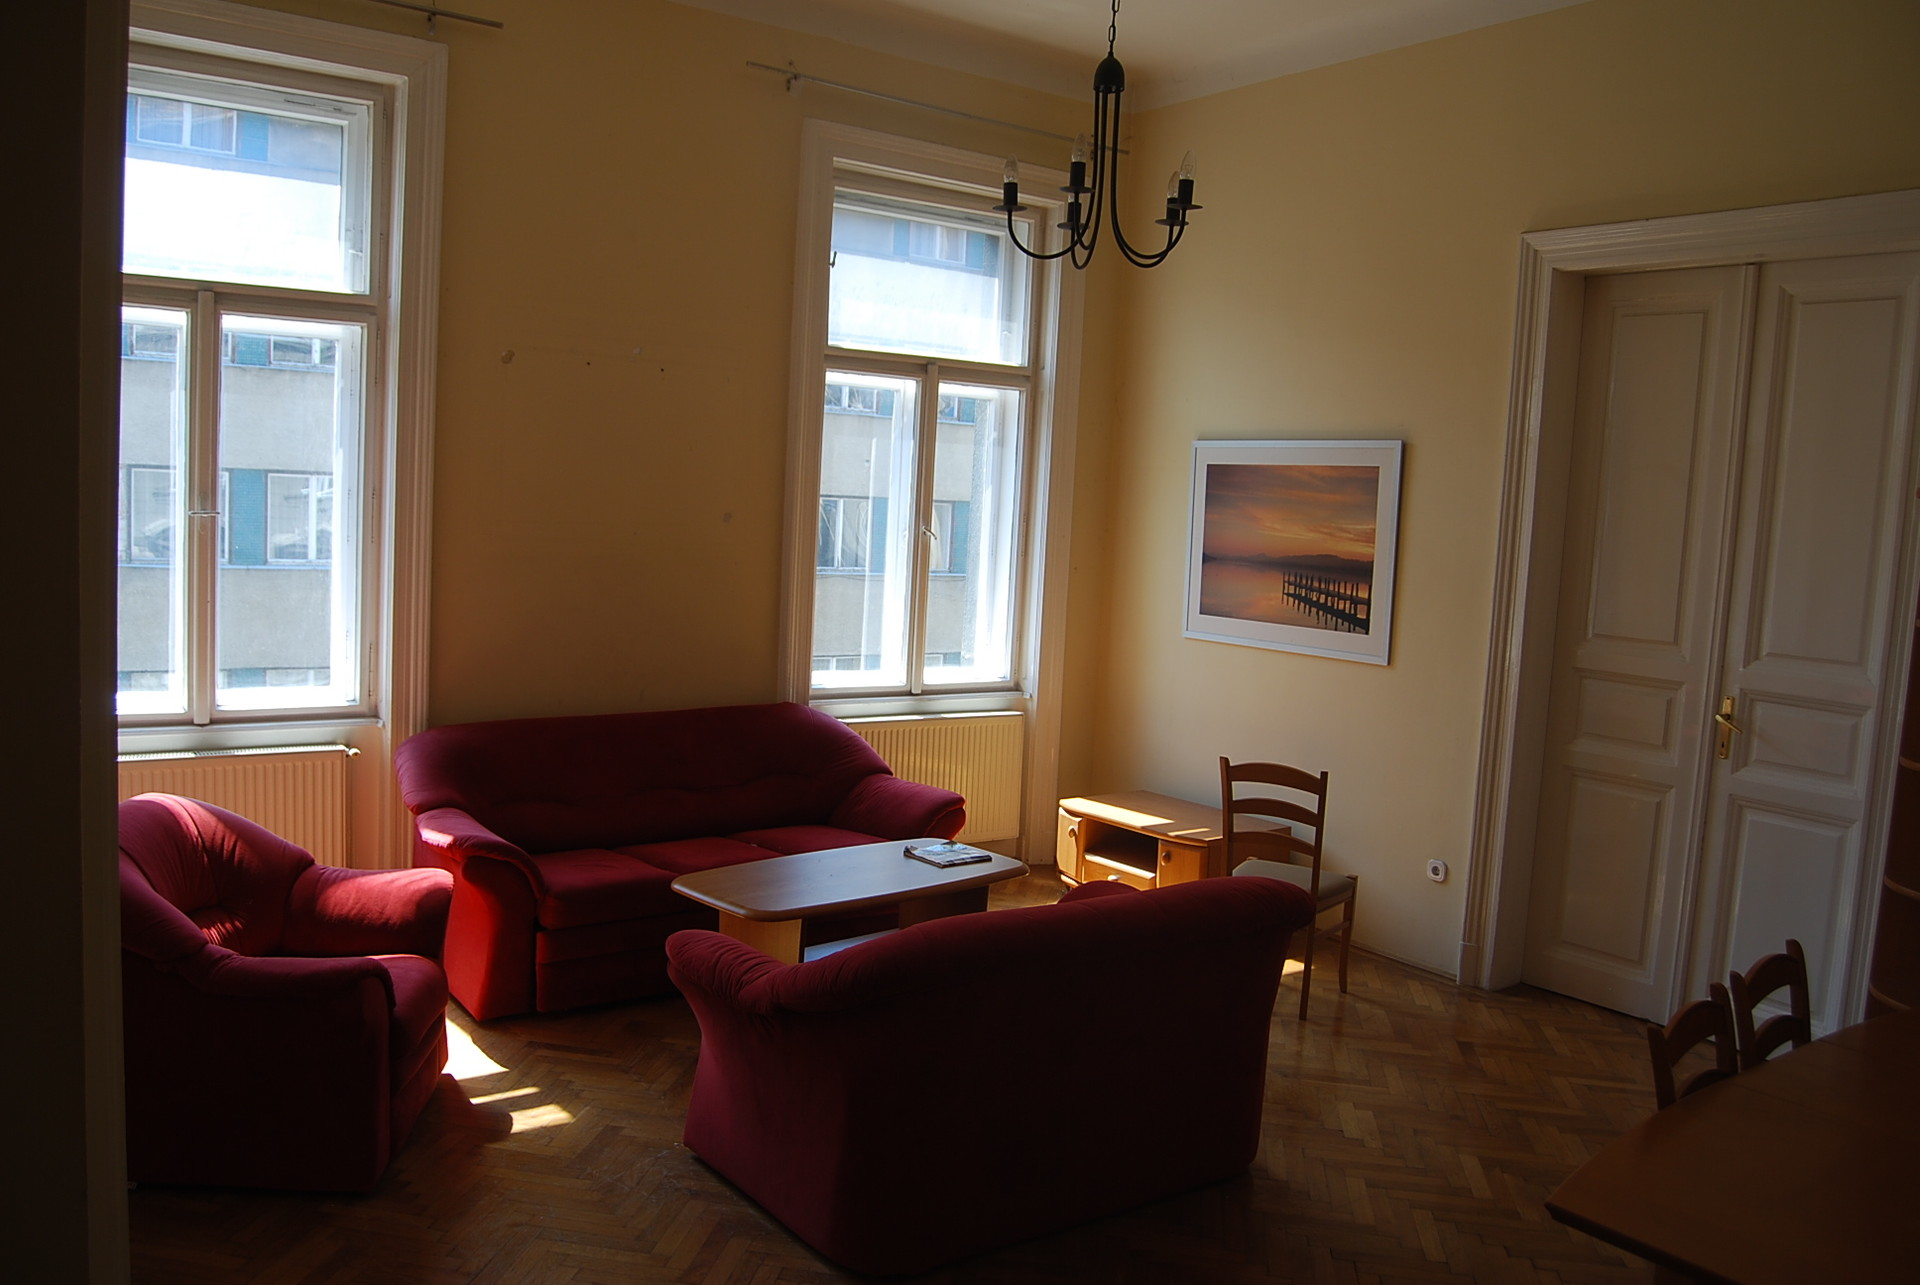 Nice apartment in central location, close to Oktogon ...